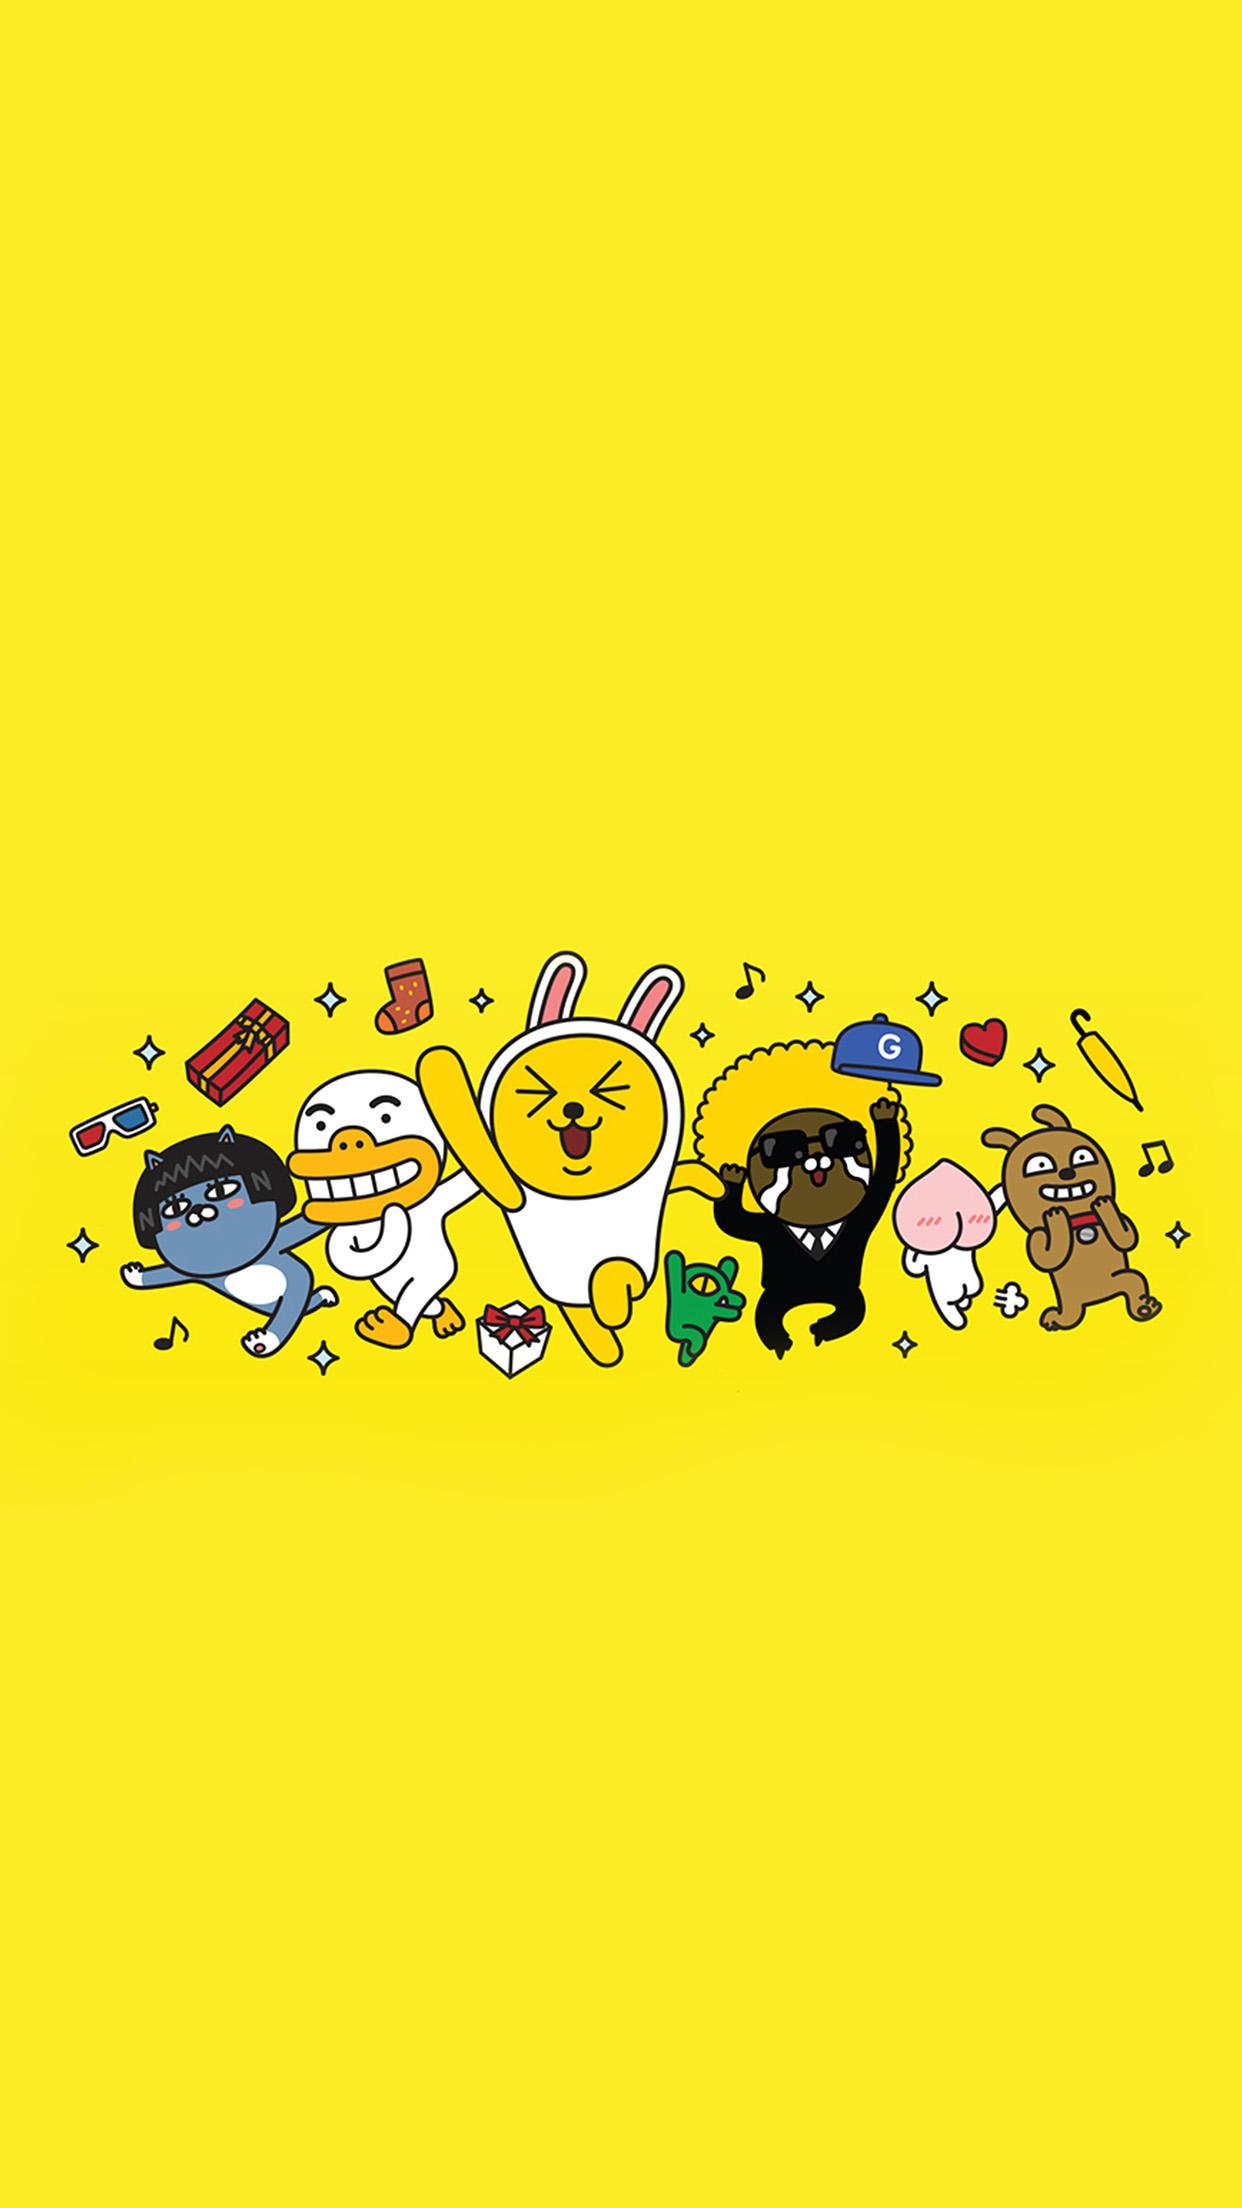 iPhone7papers.com | iPhone7 wallpaper | bc88-kakao-yellow-friends ...